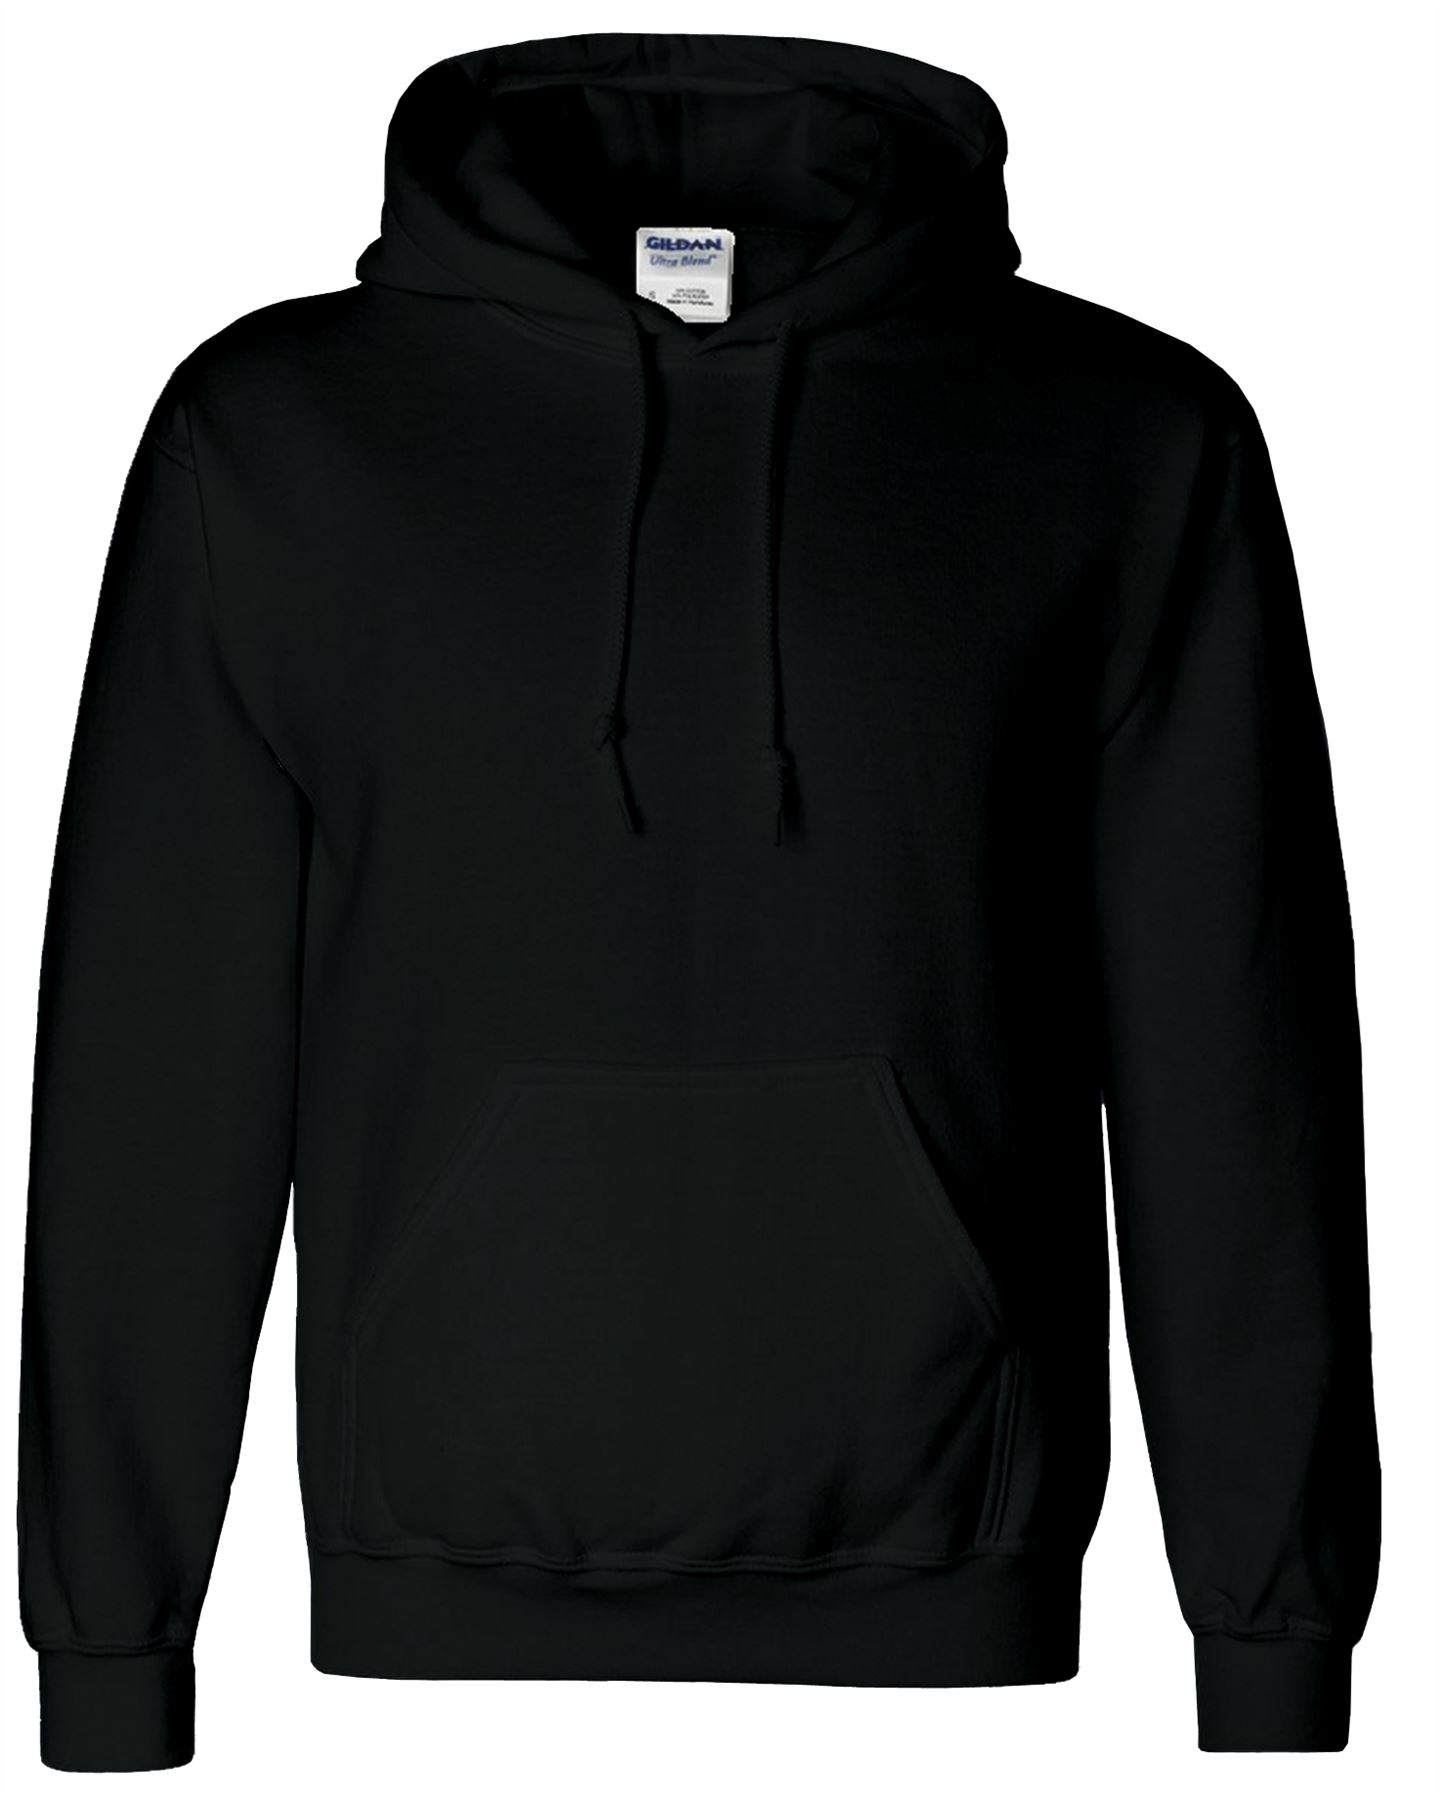 Ready for Every Day: Men's Hoodies. Whether you're racking up reps in the gym or taking it easy on the weekend, sport your look in men's hoodies and sweatshirts from DICK'S Sporting Goods.